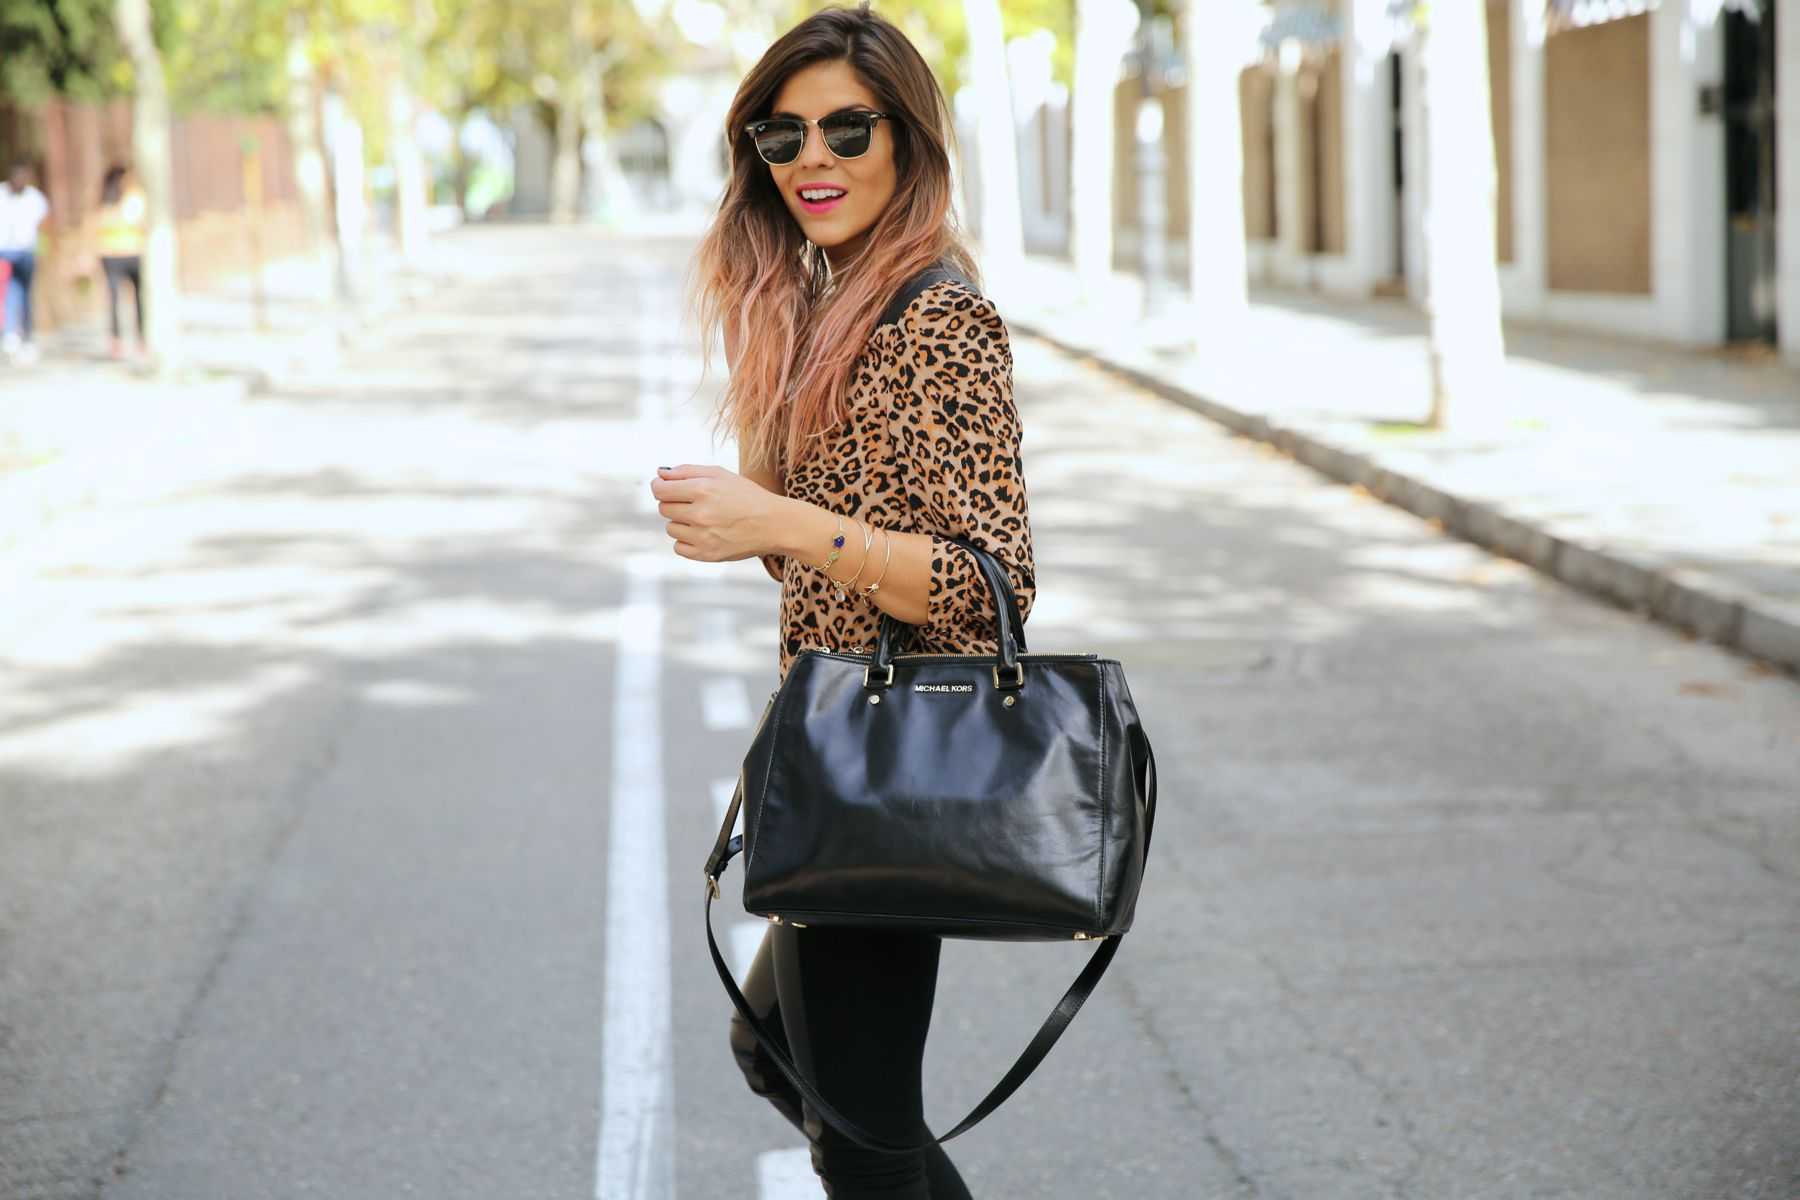 trendy_taste-look-outfit-street_style-ootd-blog-blogger-fashion_spain-moda_españa-leo_print-leopardo-converse-all_star-michael_kors-leggings-clubmaster-7